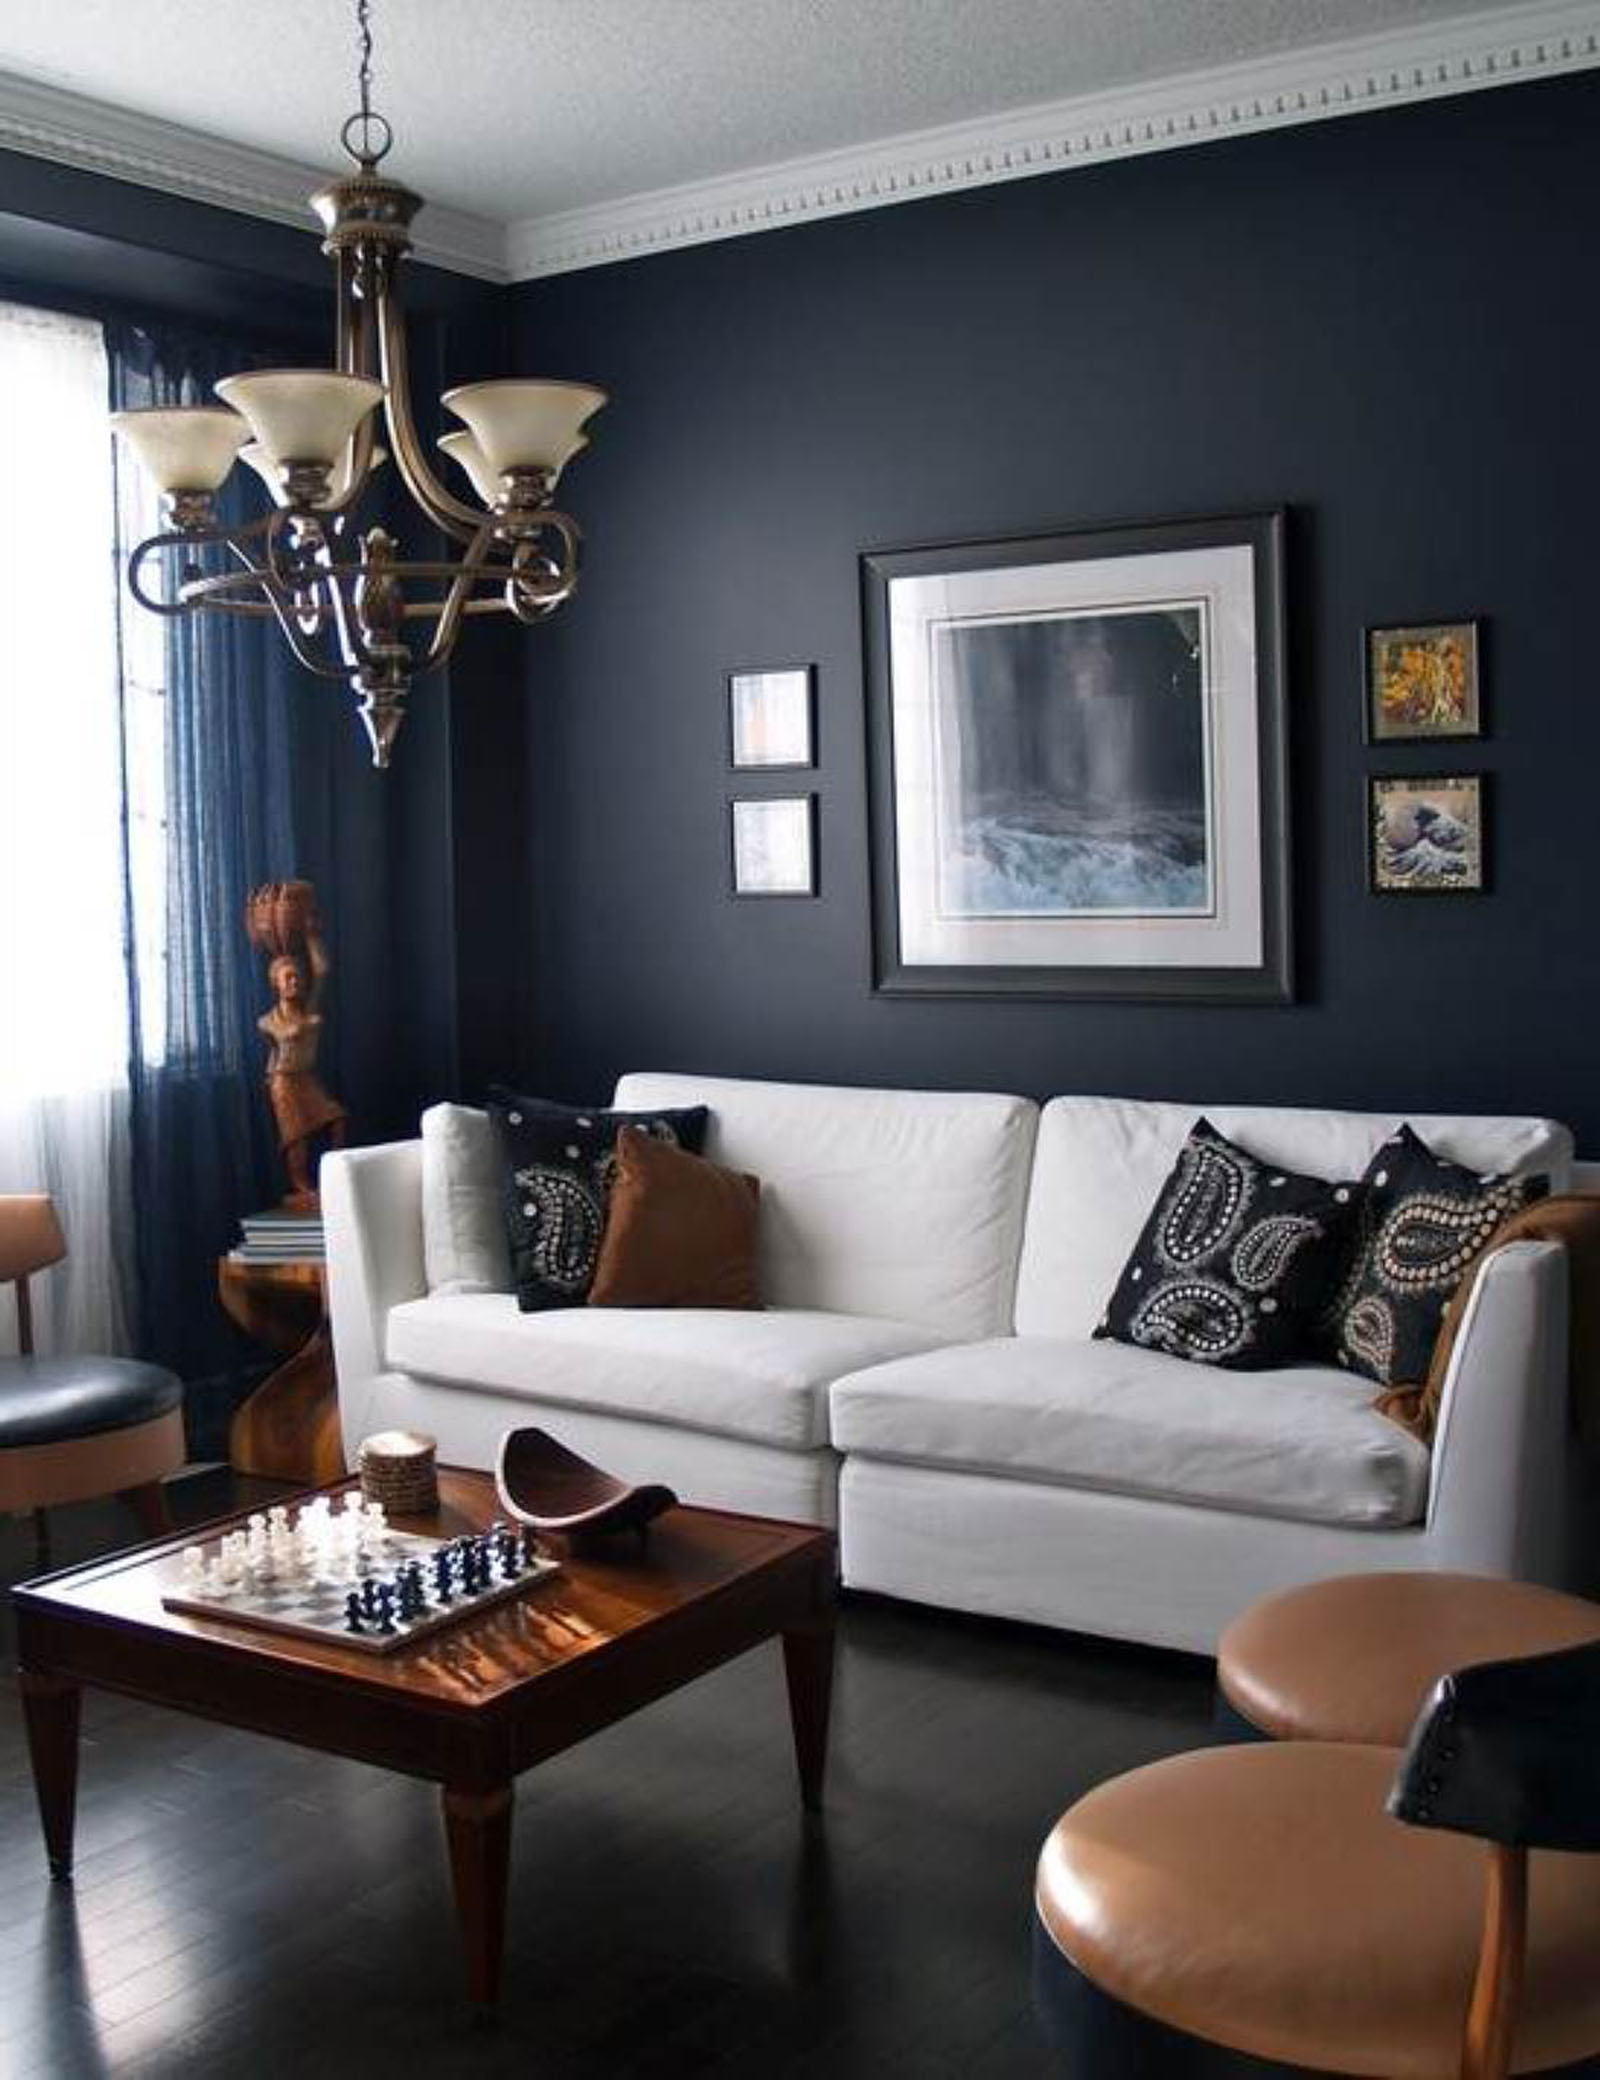 25 reasons to make your own Feng shui living room now! - Hawk Haven